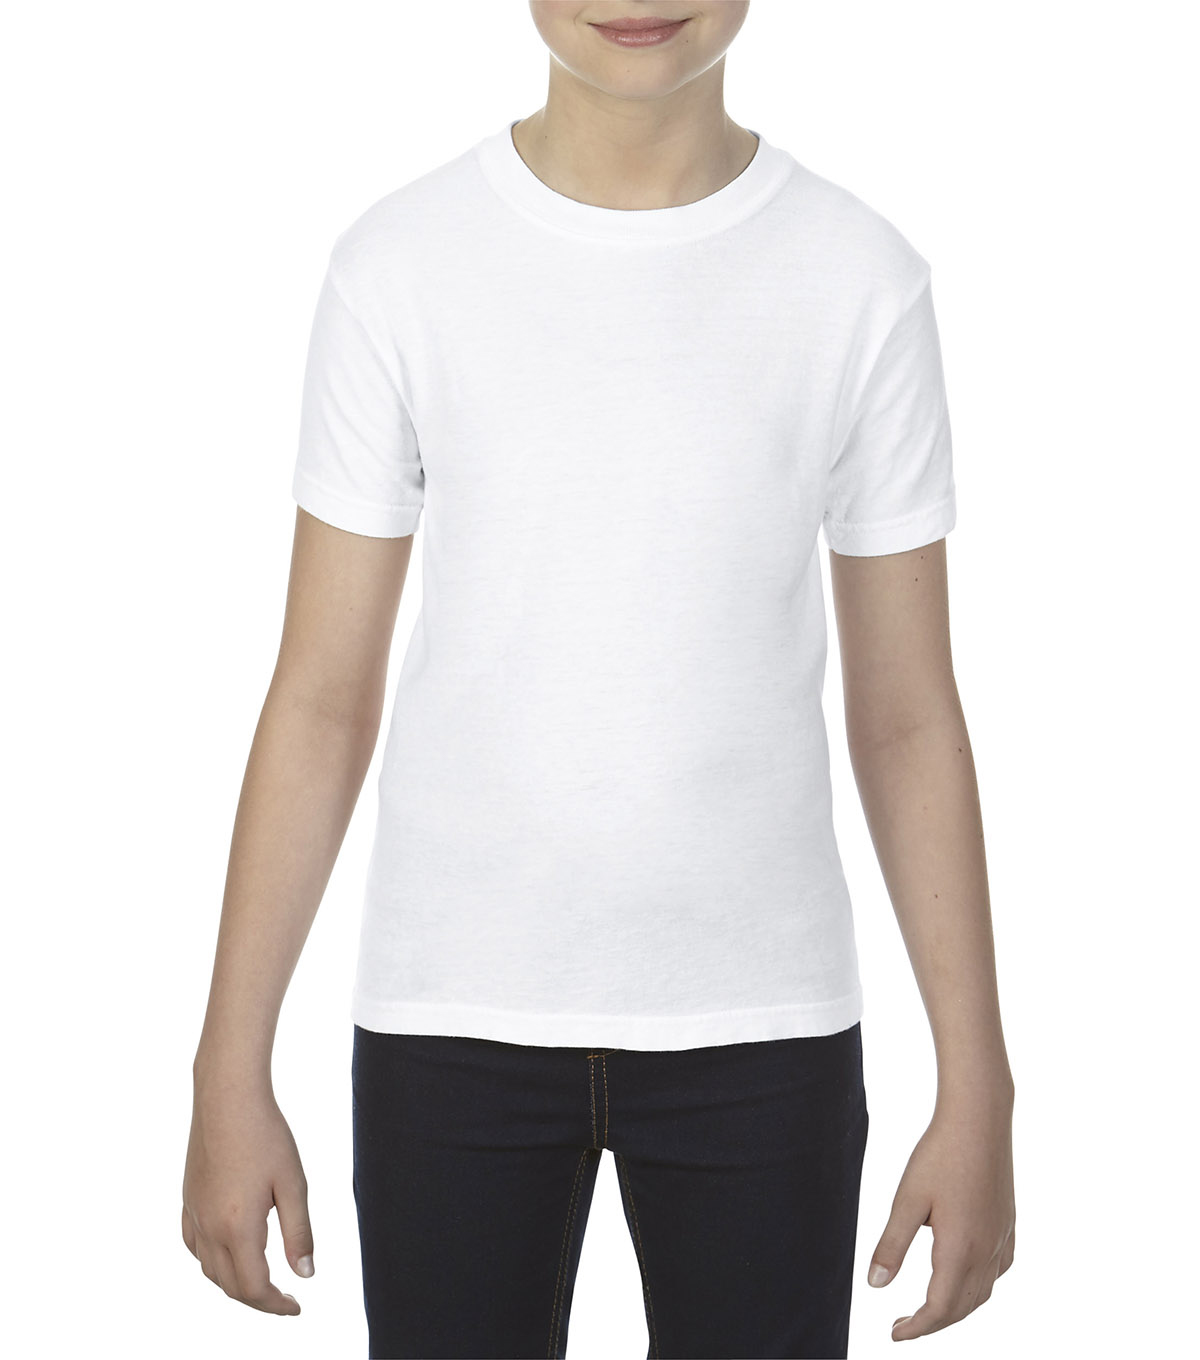 Gildan Comfort Colors 9018 Small Youth T-Shirt, White